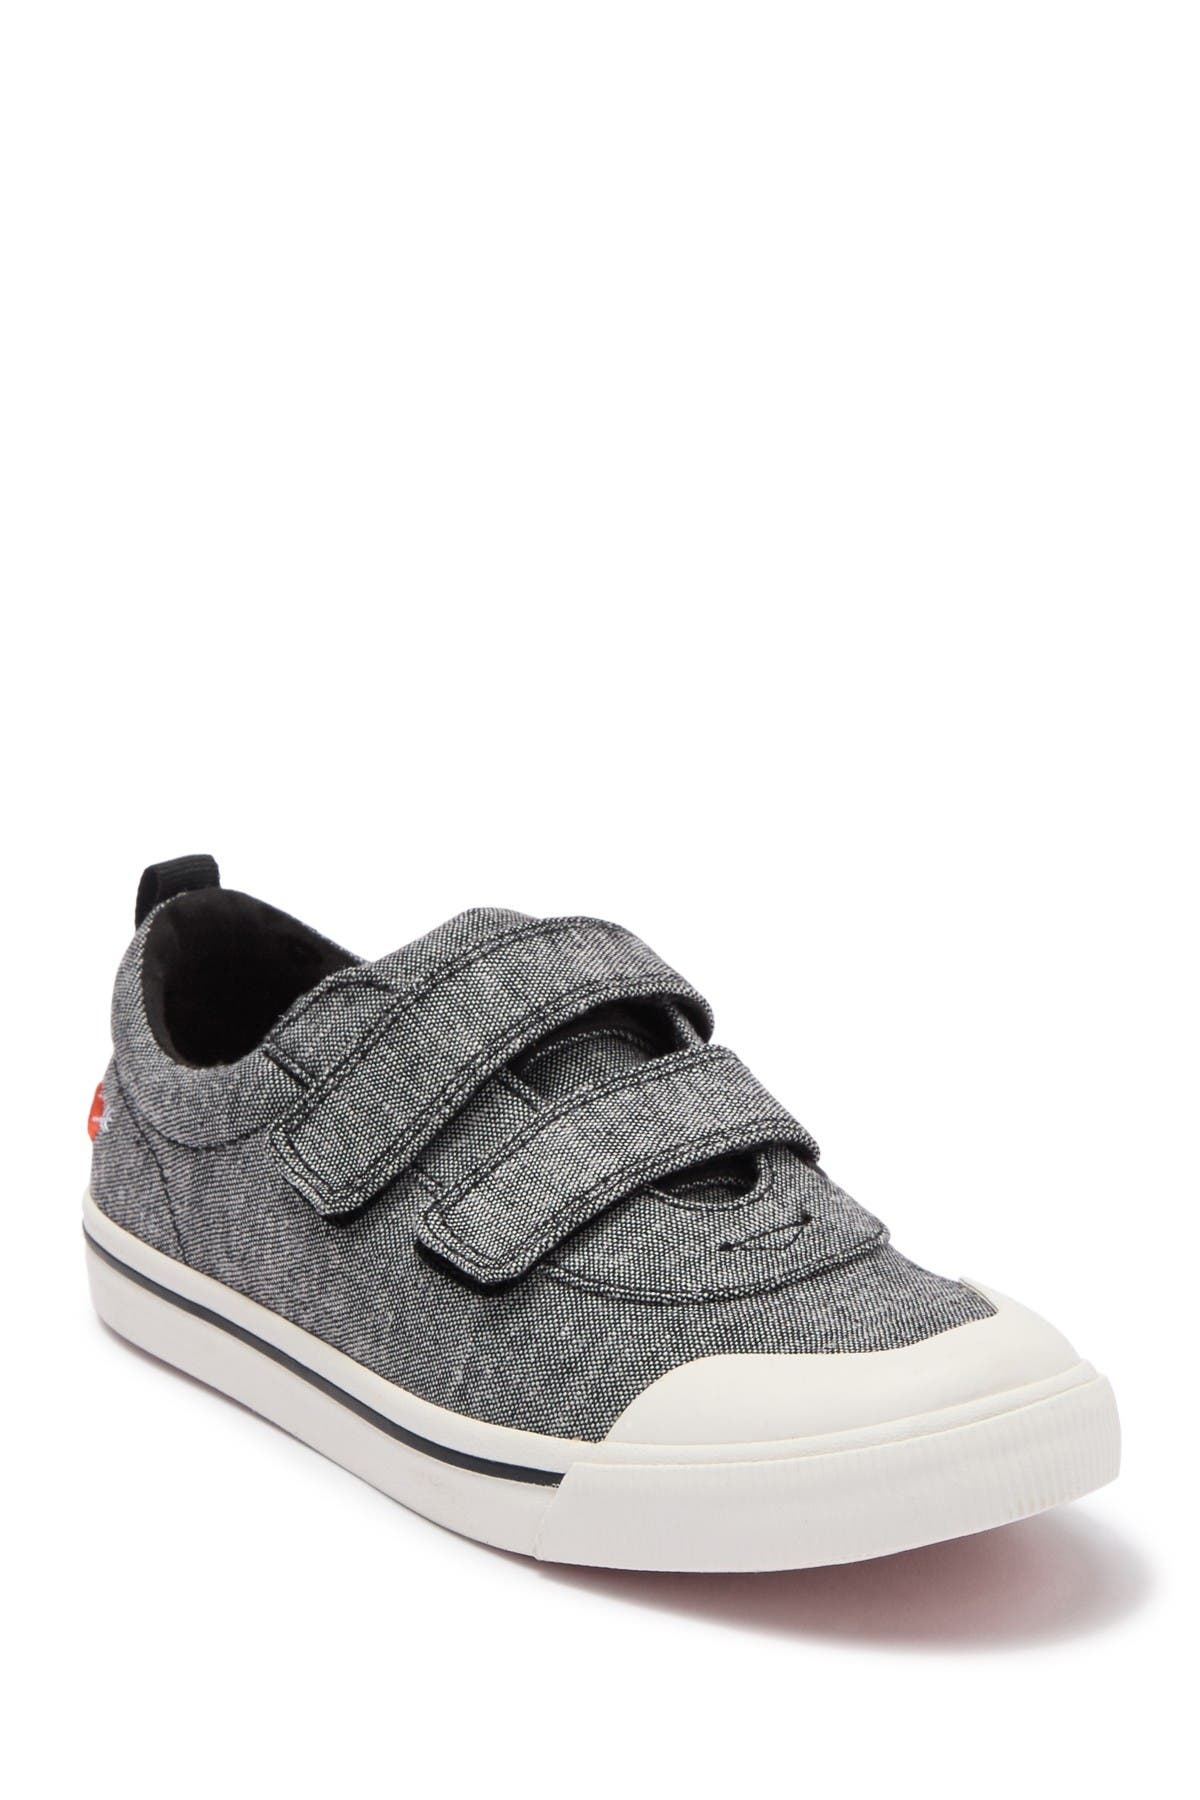 Image of TOMS Doheny Sneaker